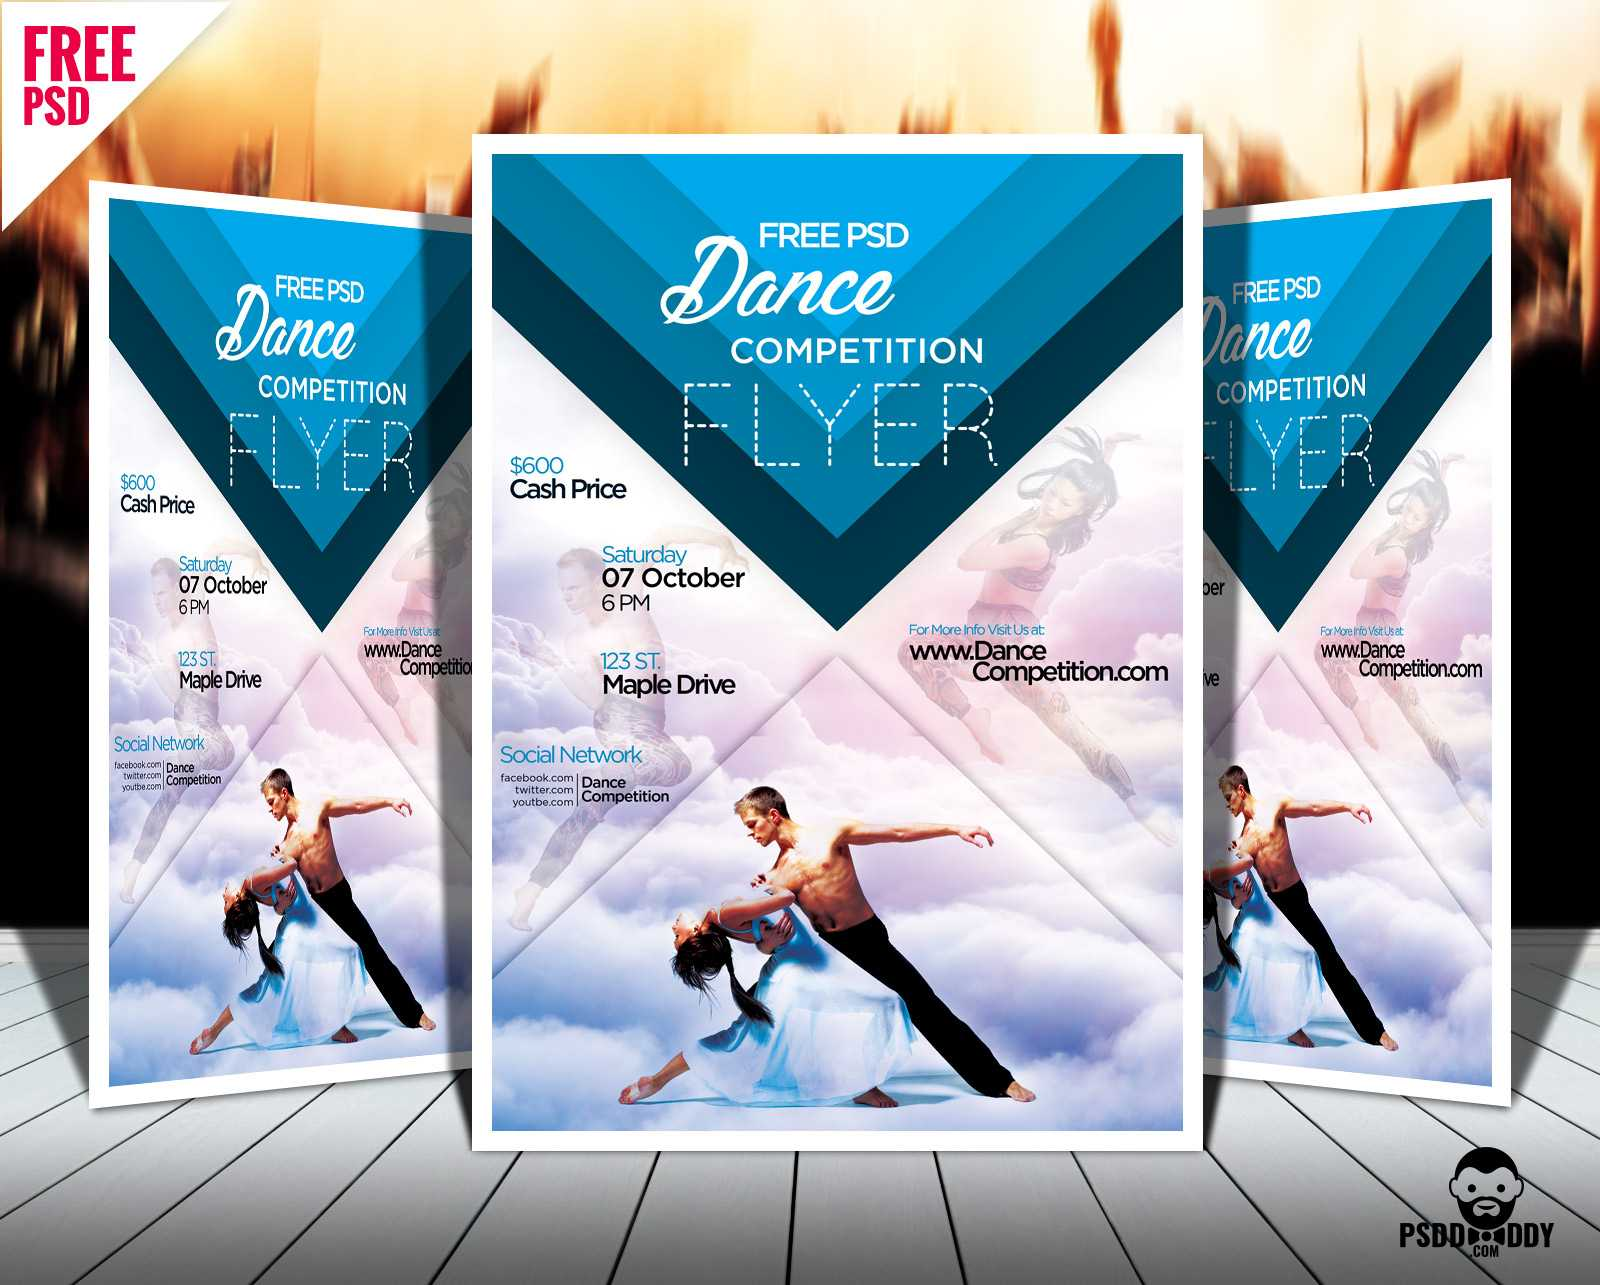 Download] Dance Competition Flyer Psd | Psddaddy Regarding Flyer Maker Template